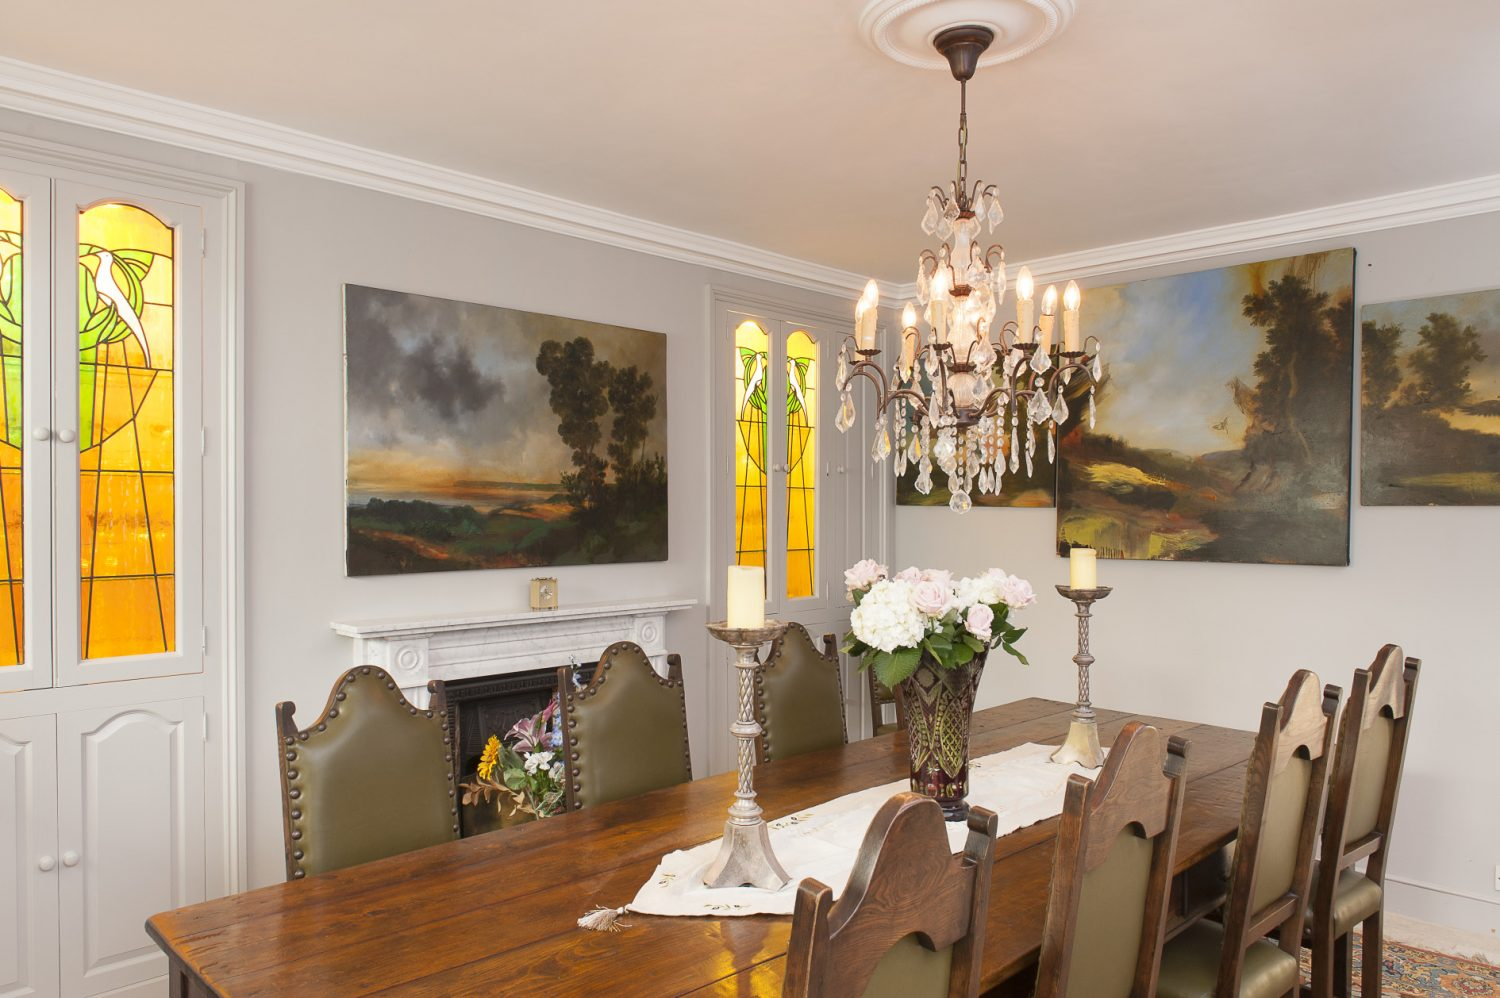 'Below stairs', in what would have been the original kitchen, Ken has created a less formal dining room dominated by a sturdy dark oak dining table from Robert Amstad. On the wall at the head of the table is a stunning Rankle of Calder Valley